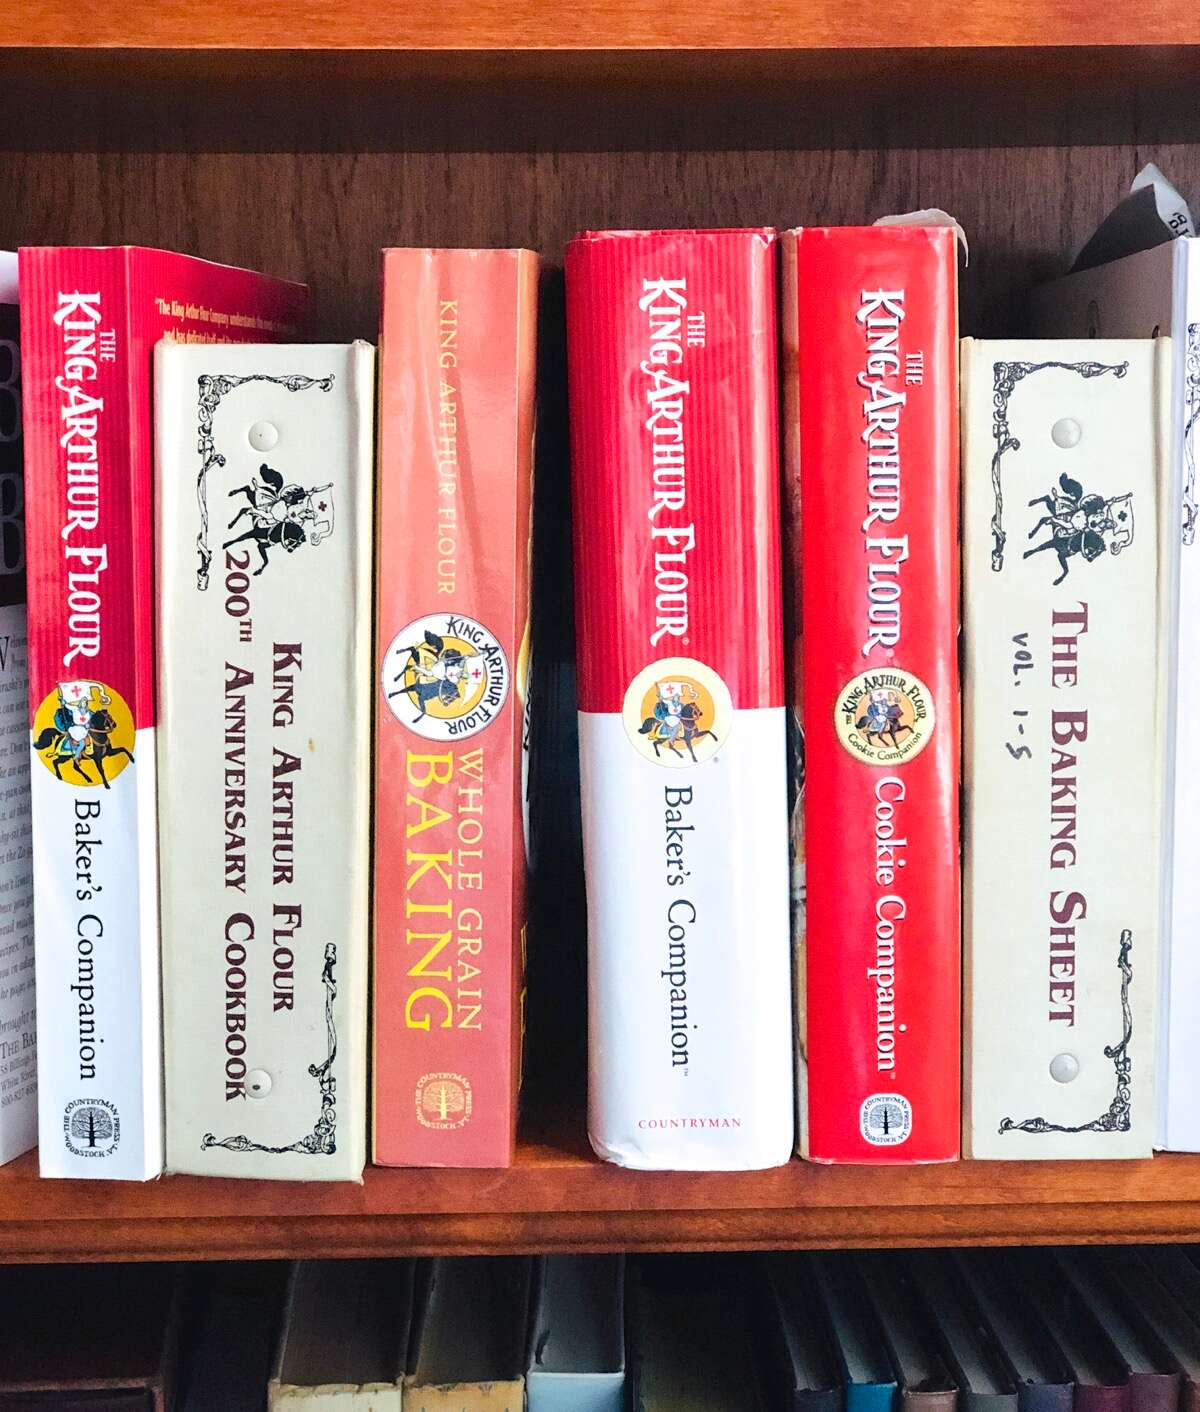 King Arthur cookbooks on a shelf.